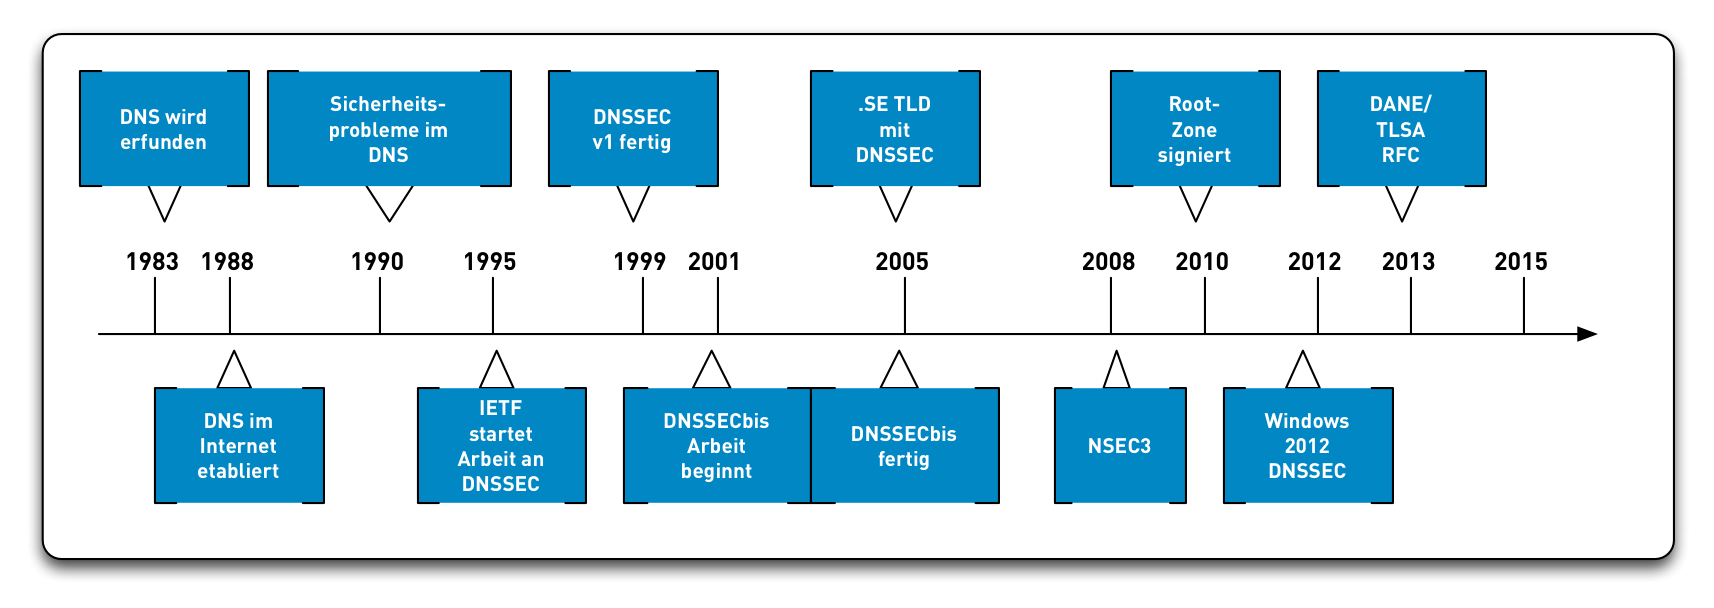 DNSSEC-History13.png